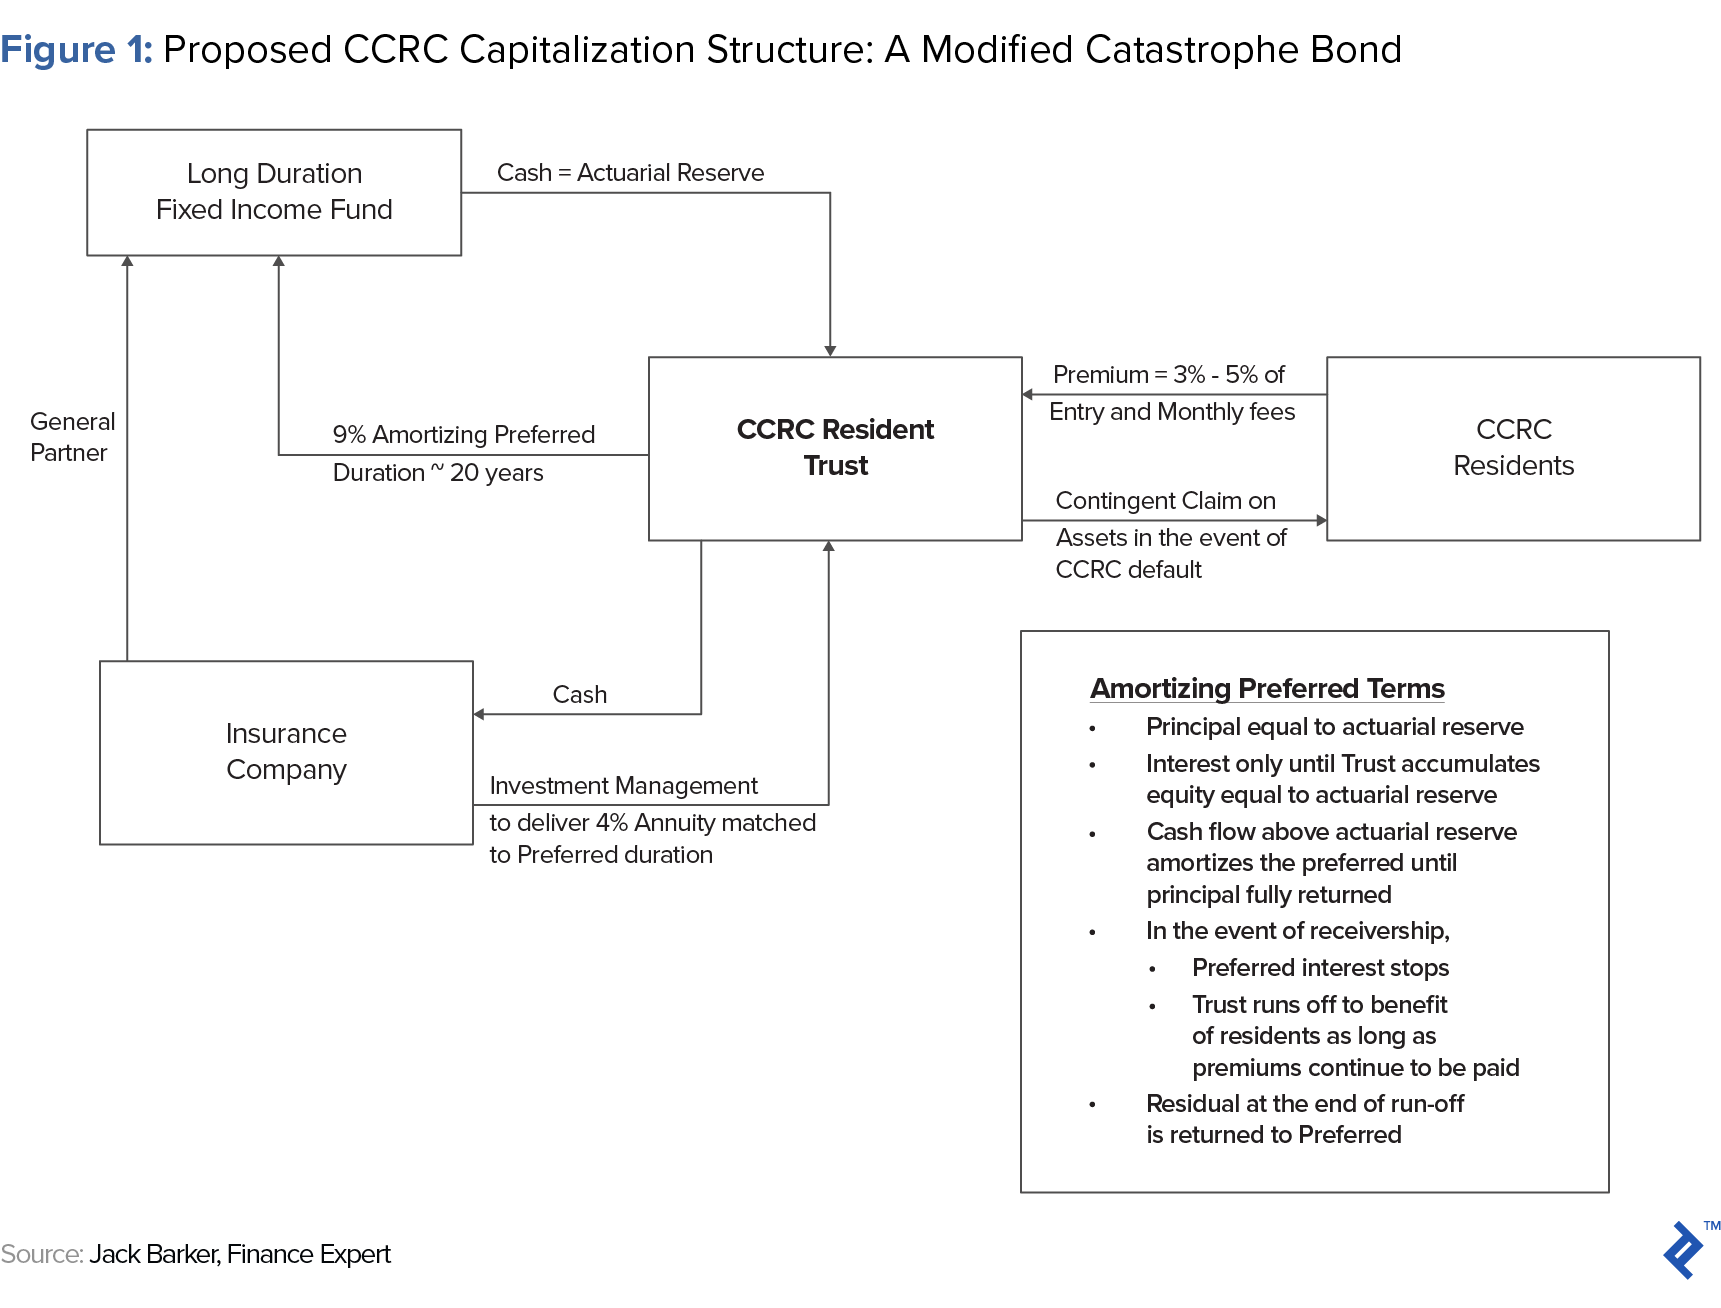 proposed ccrc capitalization structure - a modified catastrophe bond